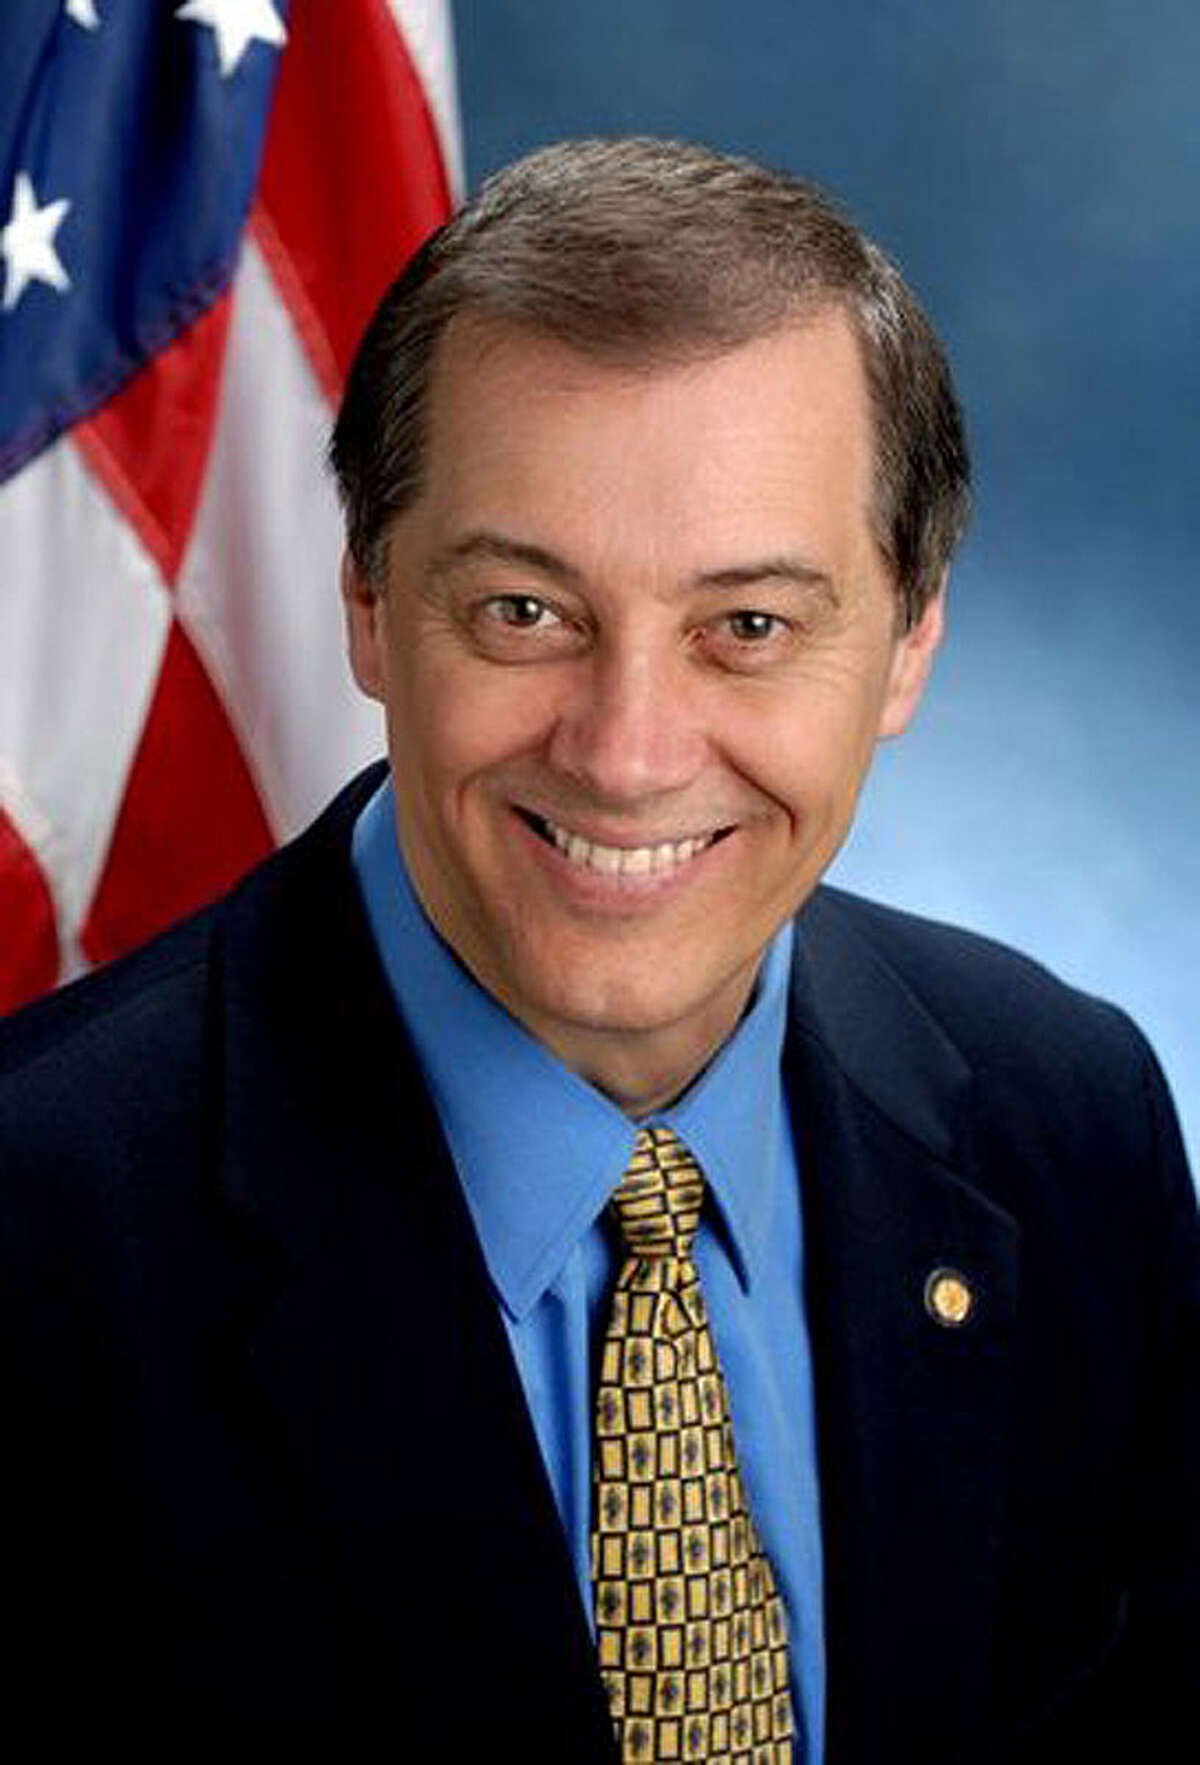 After three female members of his staff accused Western New York state Assemblyman Dennis Gabryszak in December 2013 of harassing them regularly - including sending gross messages such as a video clip that showed him grunting on a toilet - Cuomo swiftly stated that if the allegations were true, Gabryszak should step down immediately.